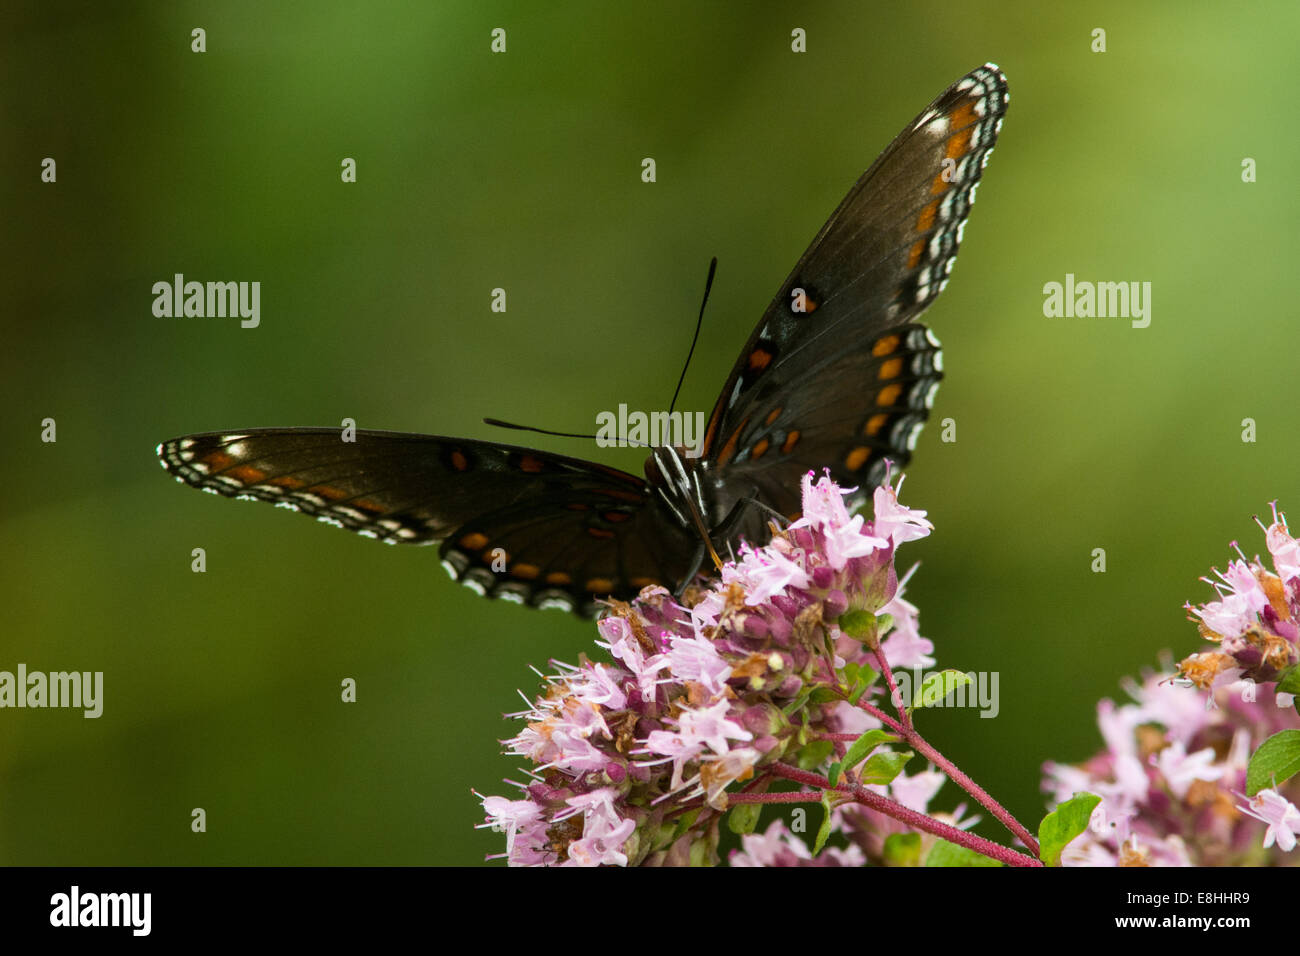 Red-spotted Purple feeding on nectar. - Stock Image